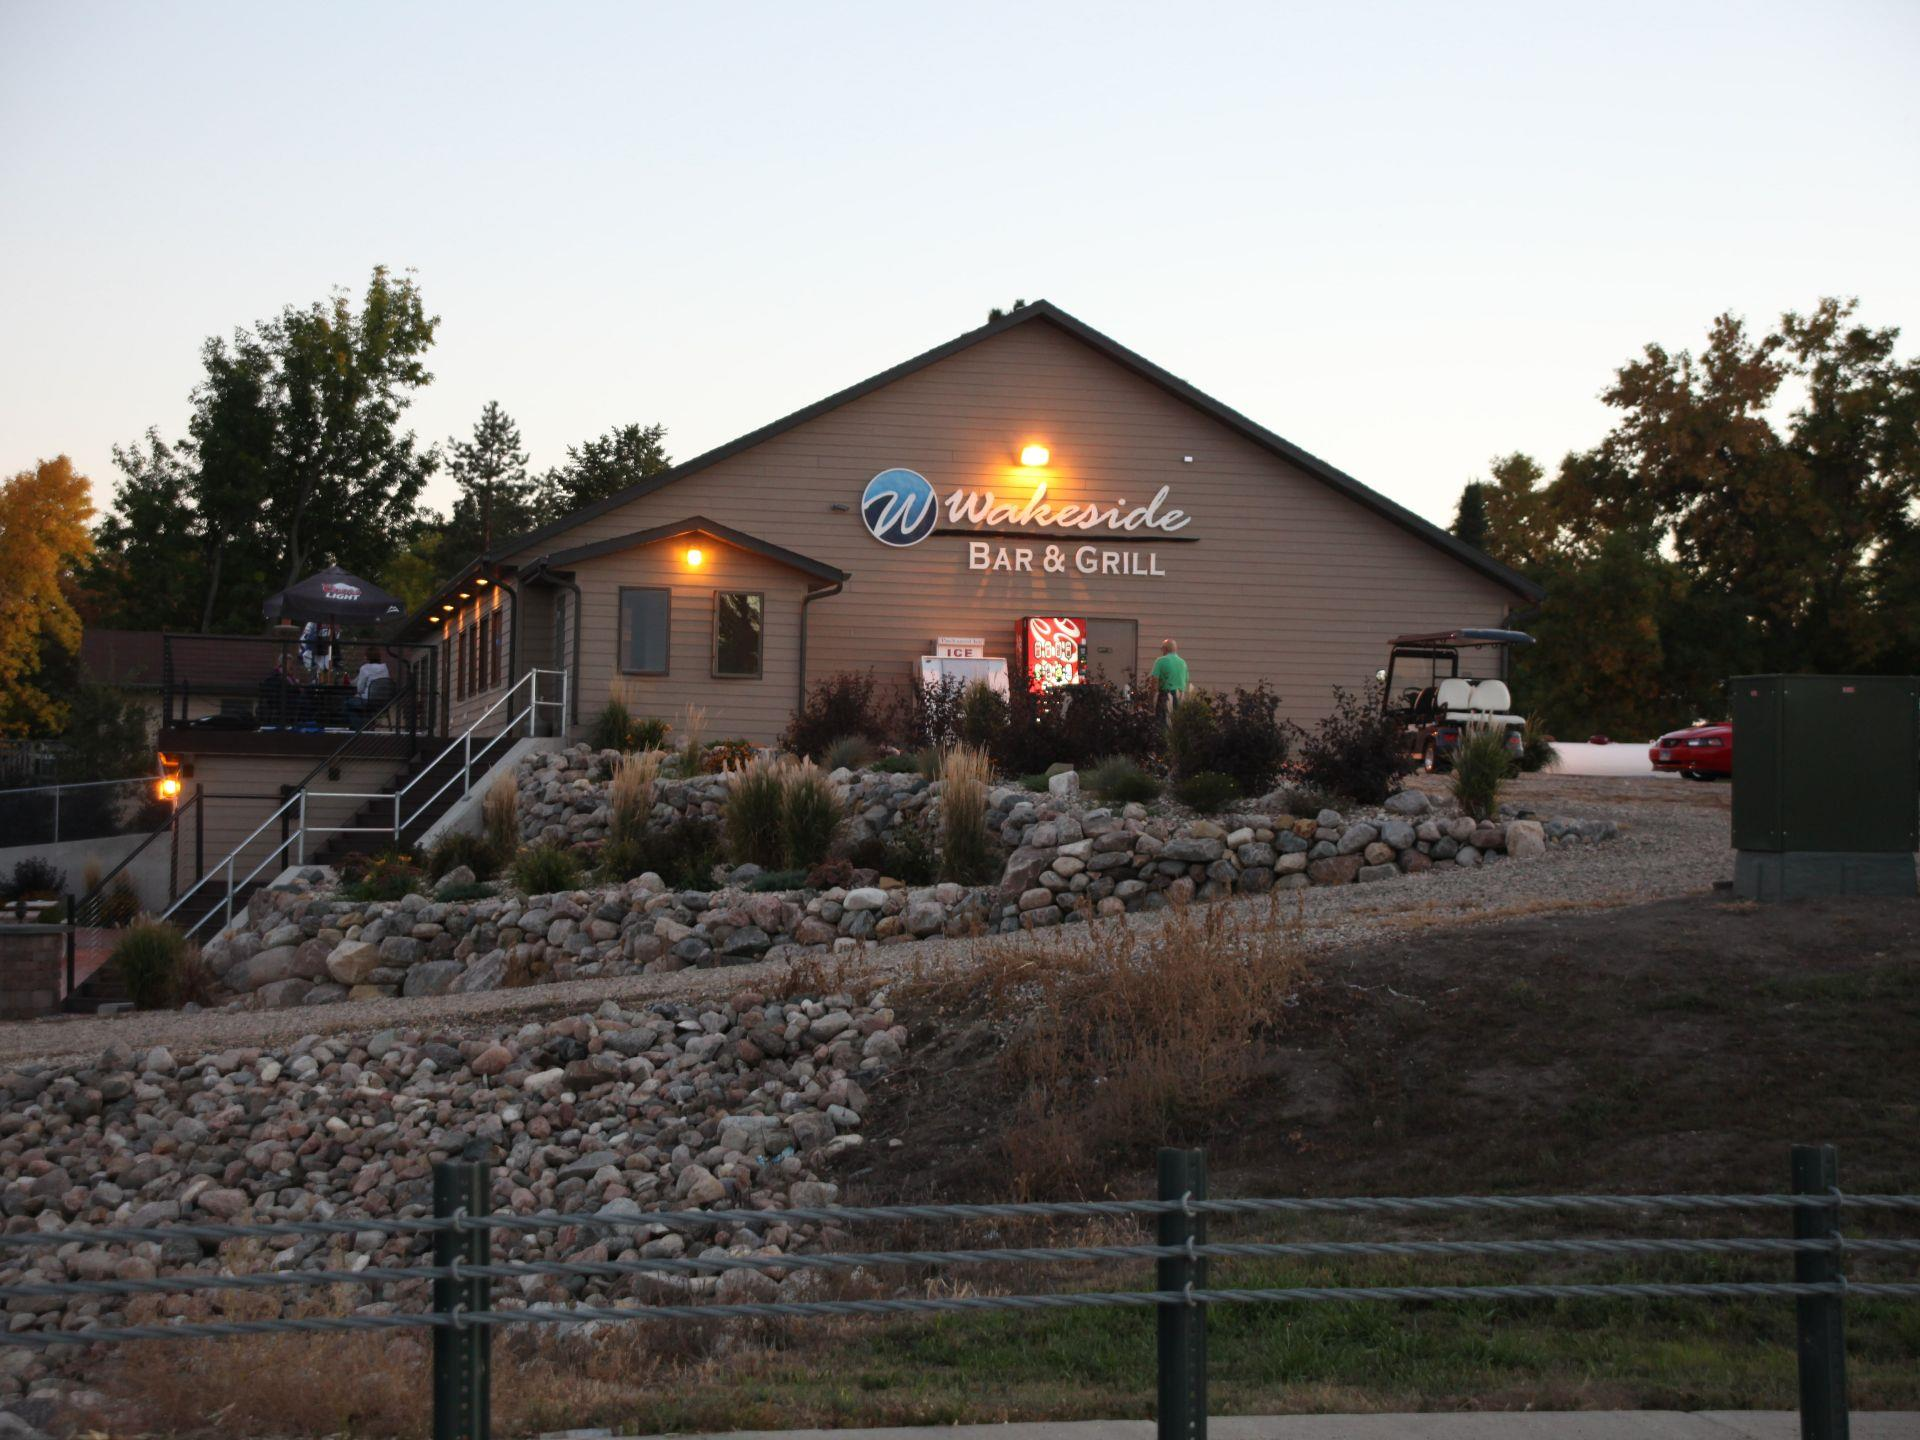 Exterior of Wakeside Bar and Grill with a rock pathway leading around the building